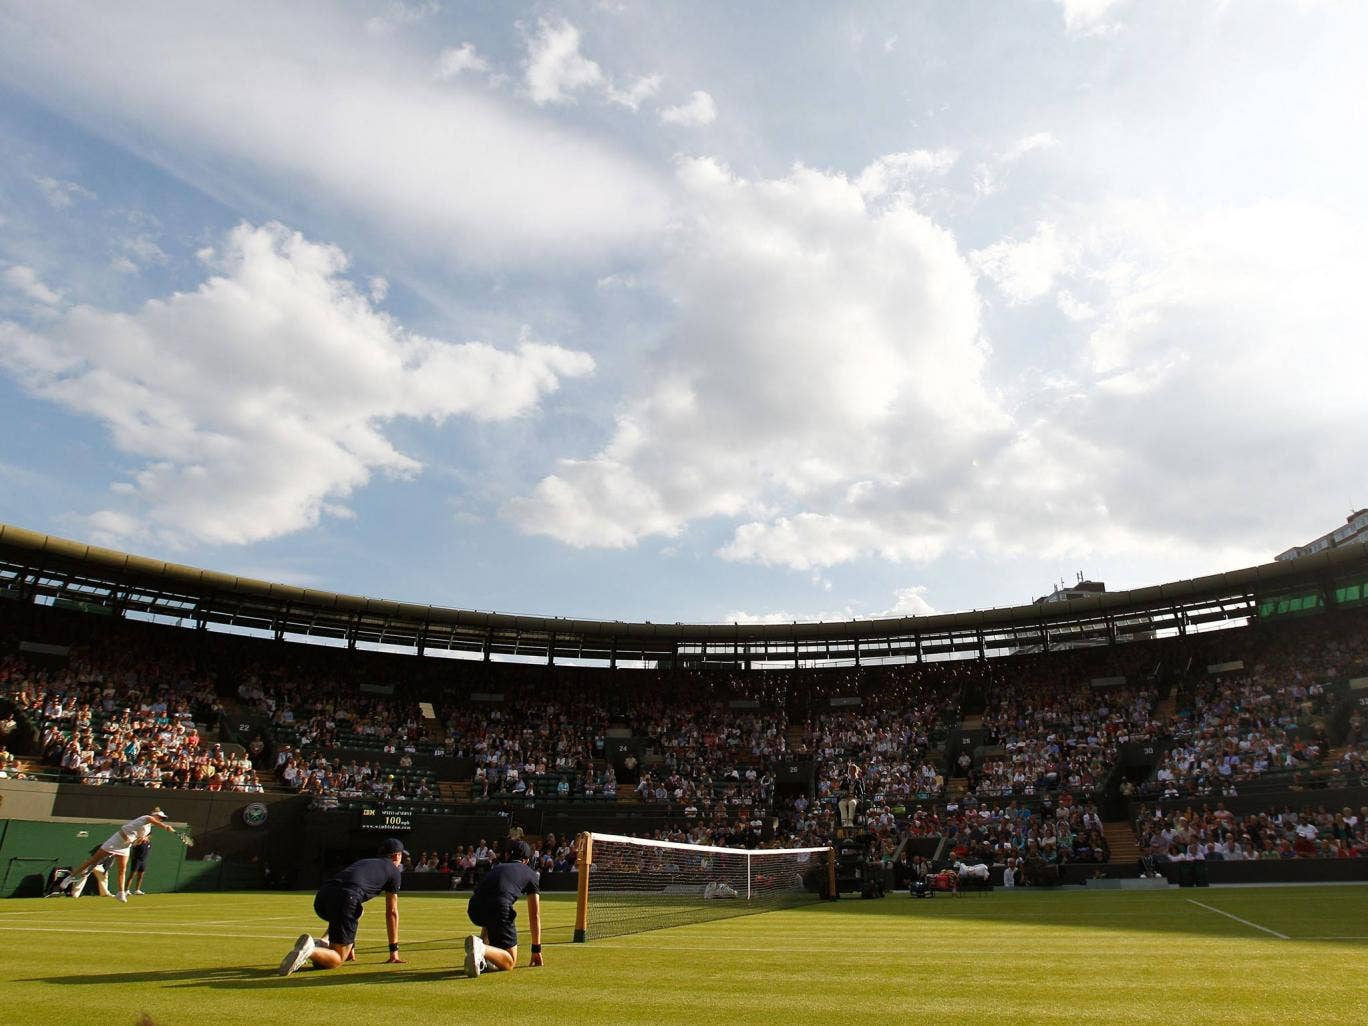 A view of Court One at Wimbledon